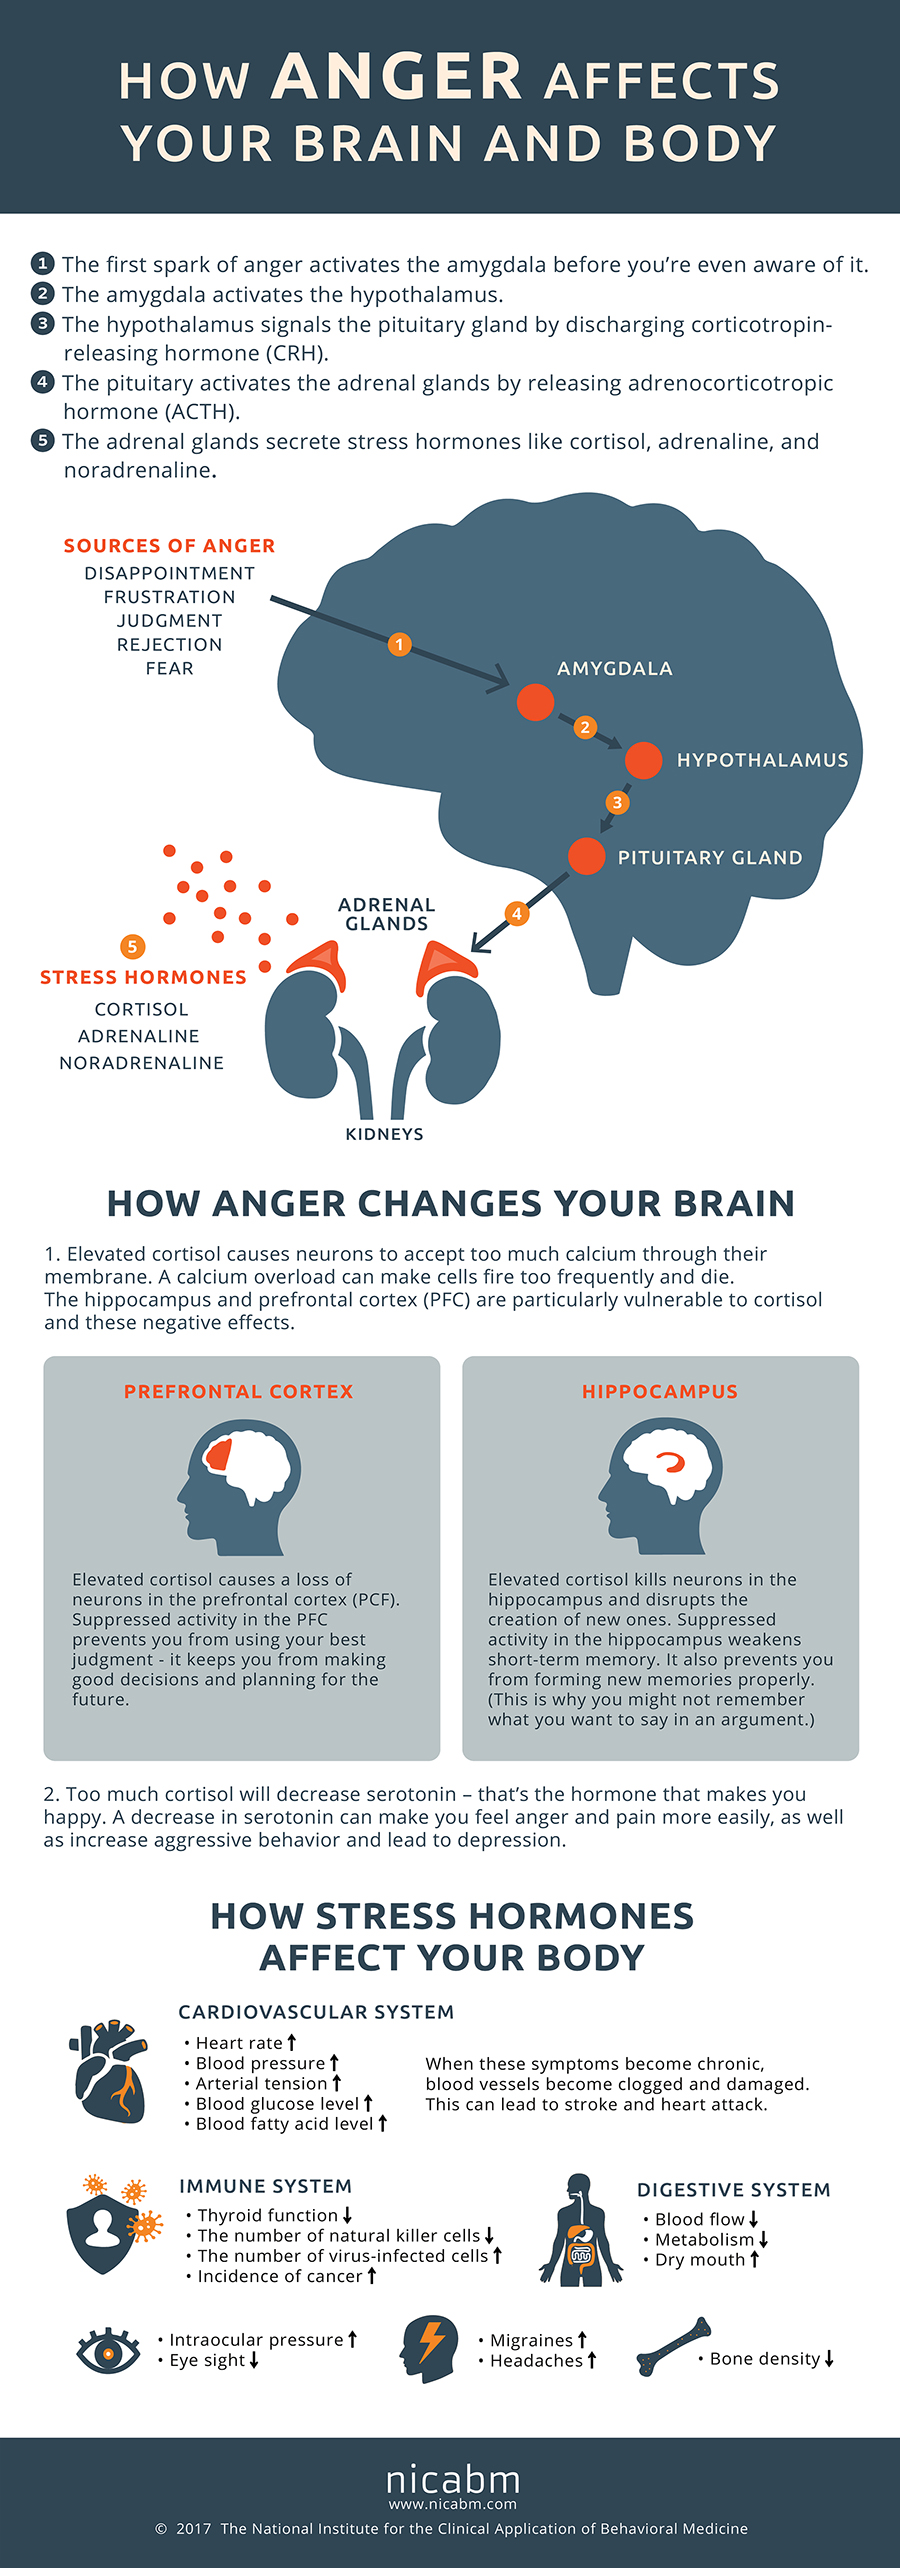 NICABM Anger Infographic - Controlling anger - Why anger is your biggest enemy